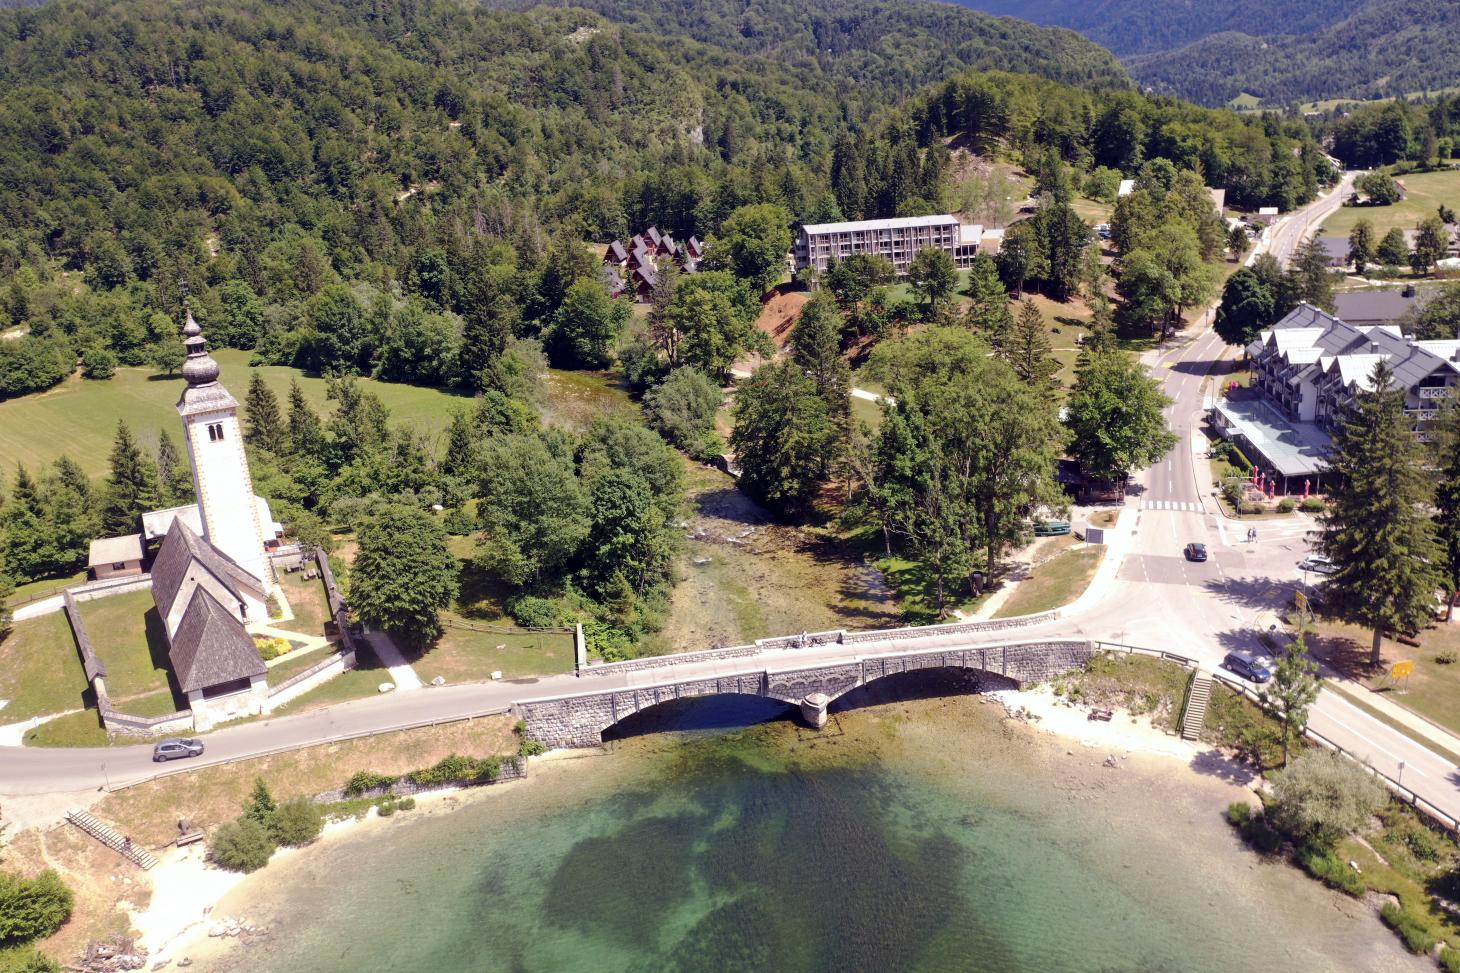 This hotel is set close to the shores of Lake Bohinj